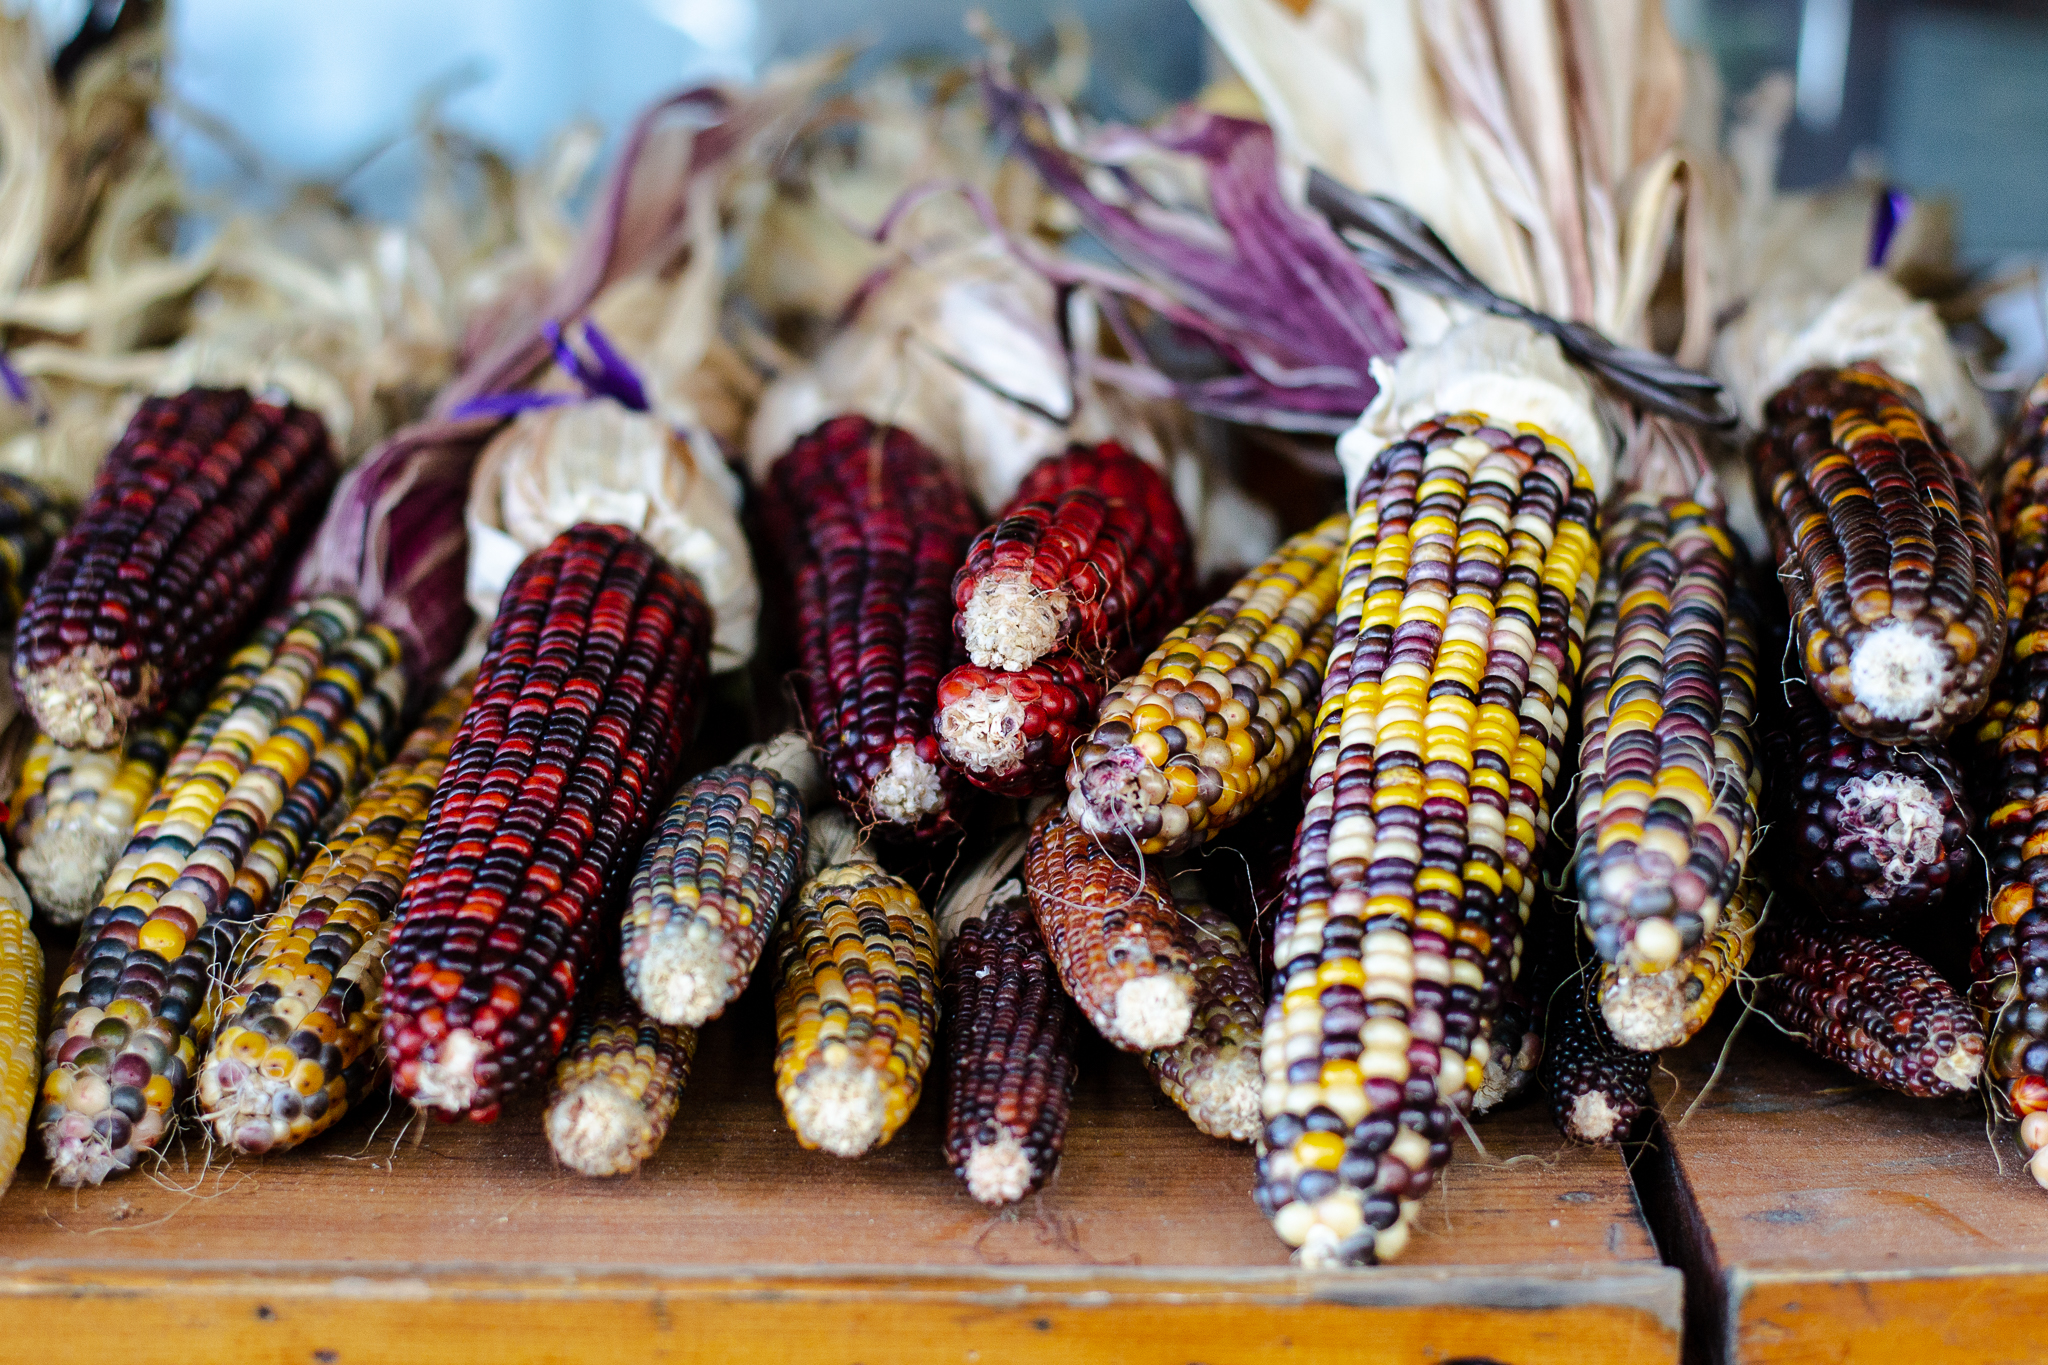 Piles of multi-coloured corn on a wooden shelf at Cheer Farms.